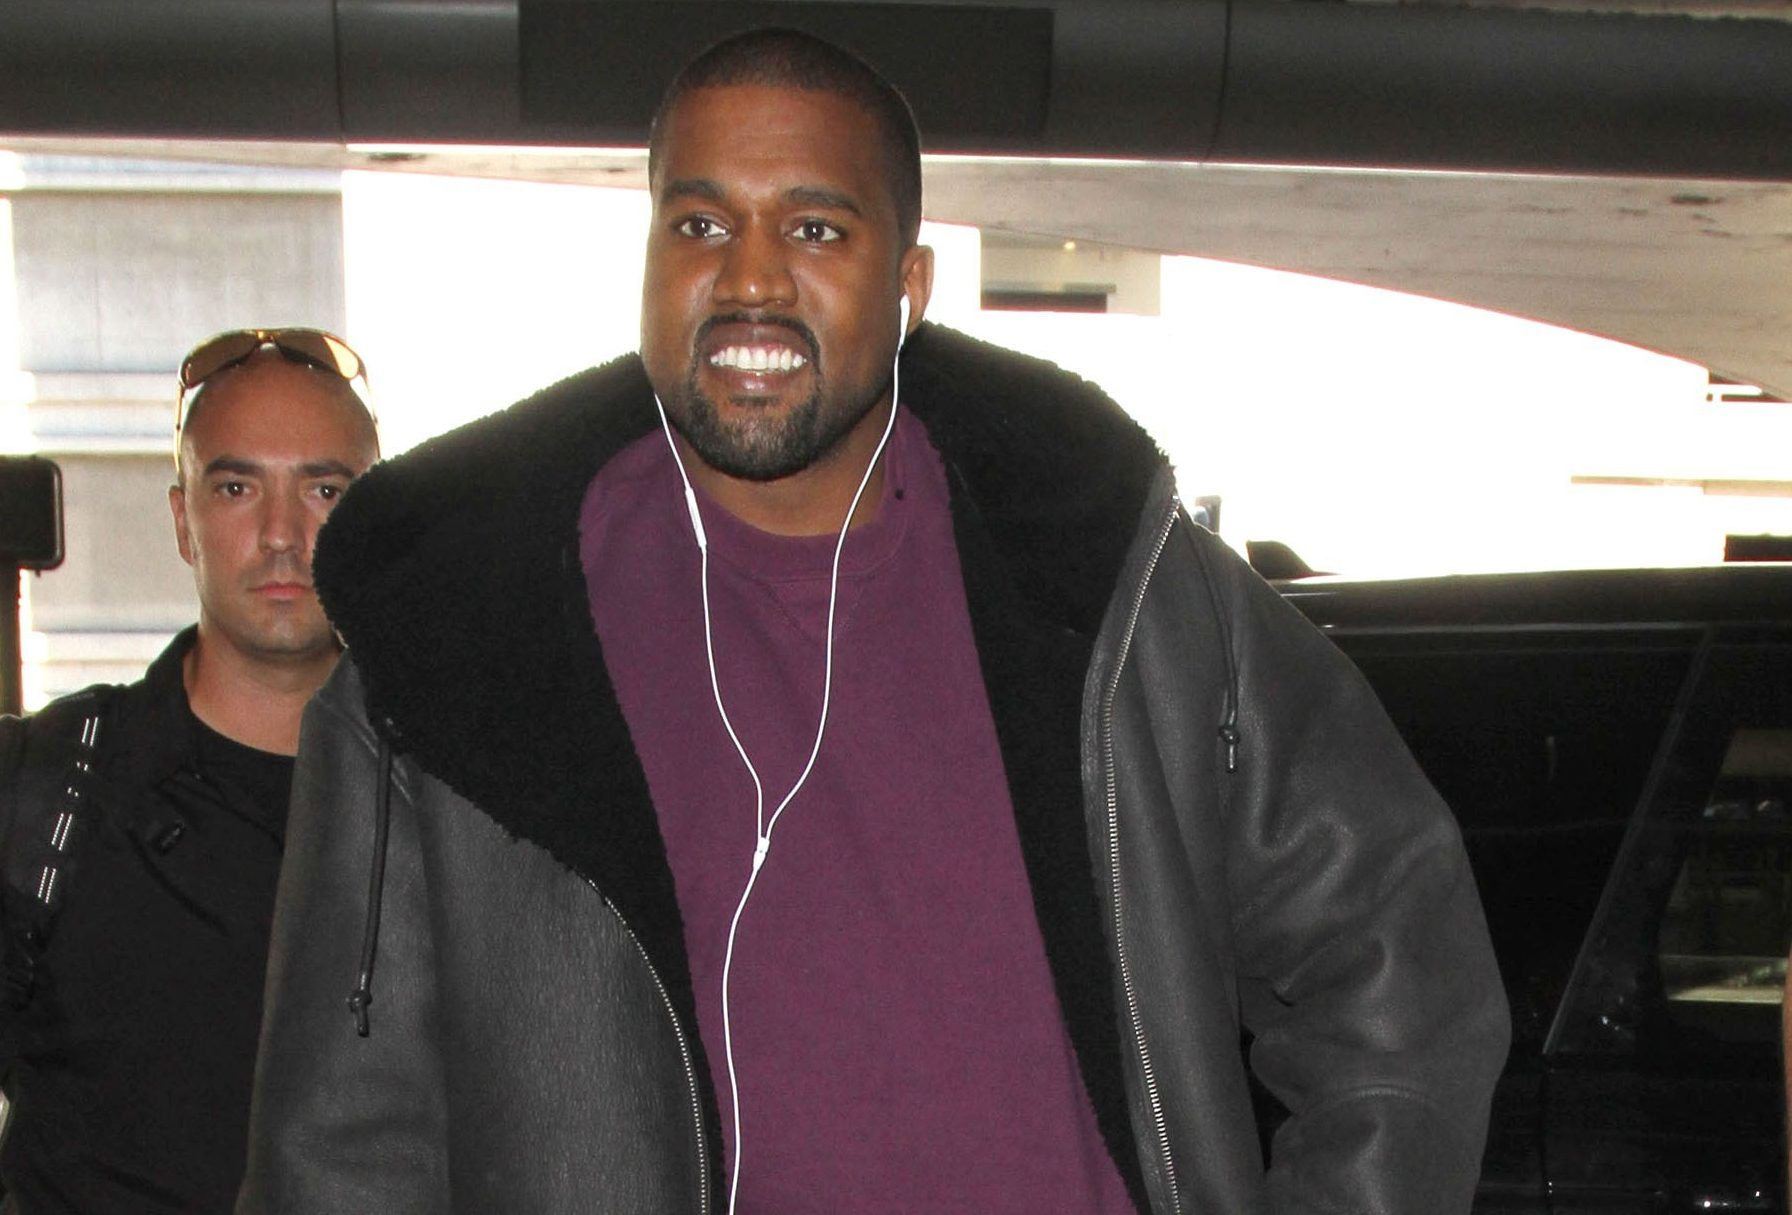 Kanye West making DRASTIC life changes following breakdown